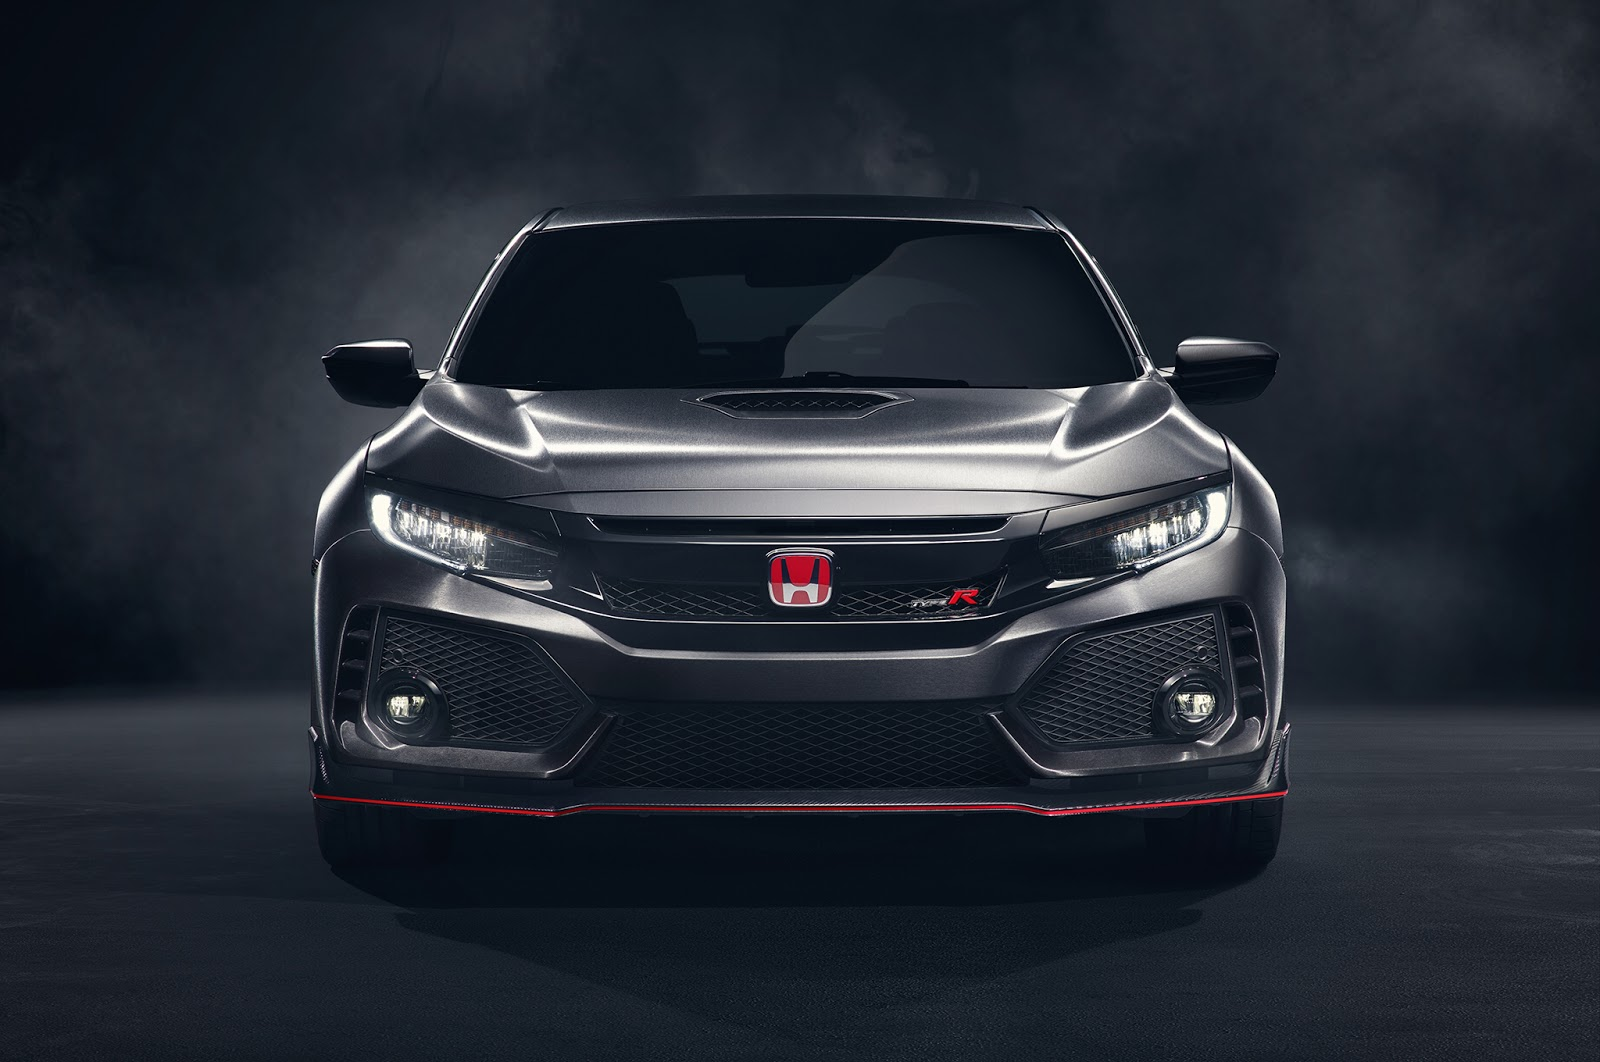 2018 honda civic type r prototype is the one coming to u s and we re super hyped carscoops. Black Bedroom Furniture Sets. Home Design Ideas